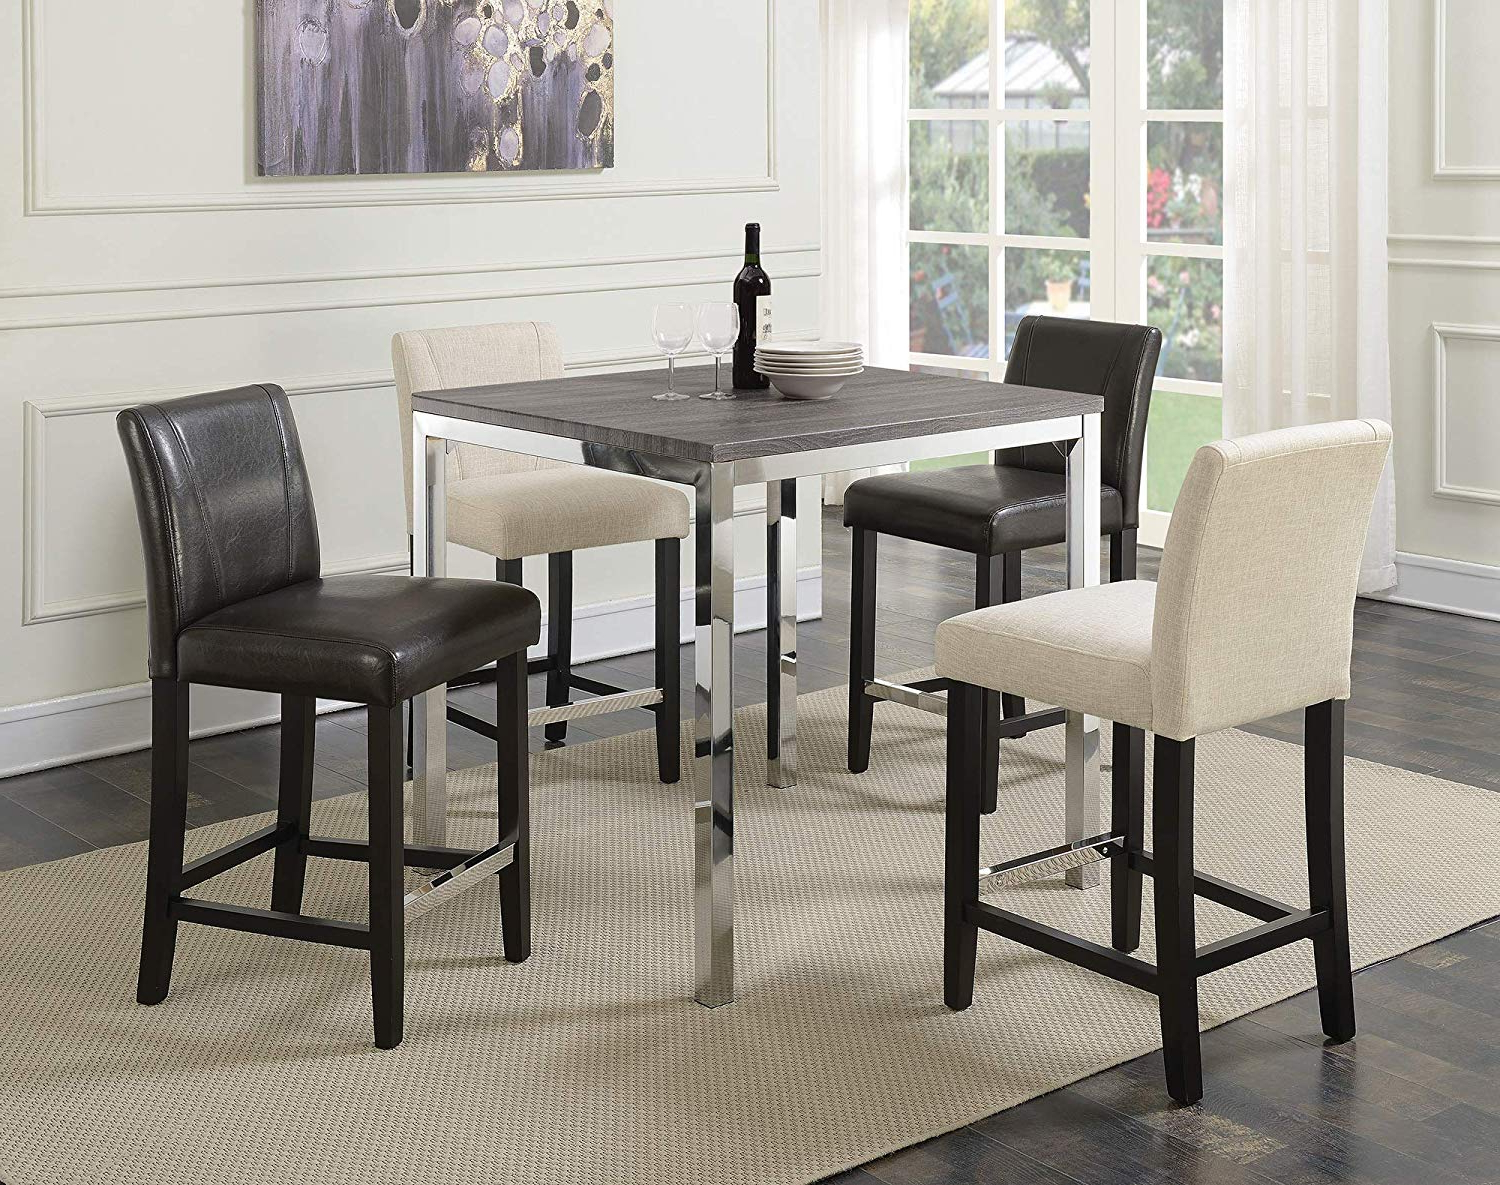 Chrome Contemporary Square Casual Dining Tables Inside Widely Used Amazon – Benjara Benzara Bm168112 Square Counter Height (View 2 of 25)